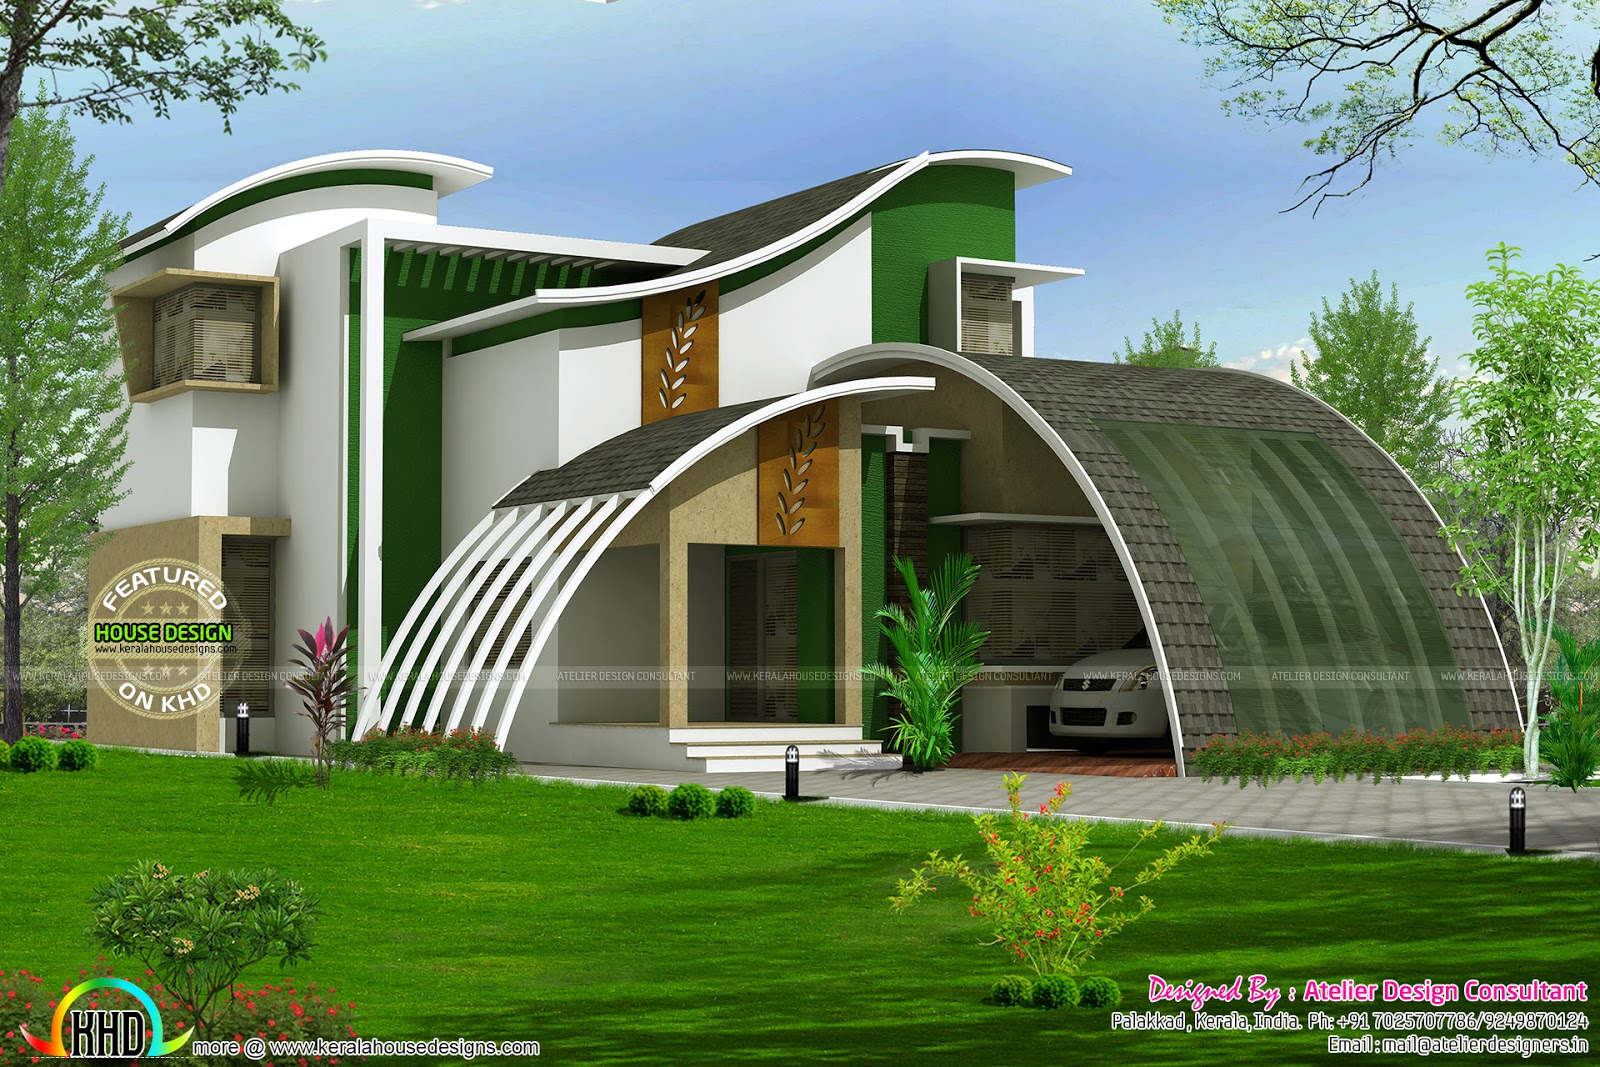 Flowing style curvy roof home plan kerala home design and floor plans - Home house design ...